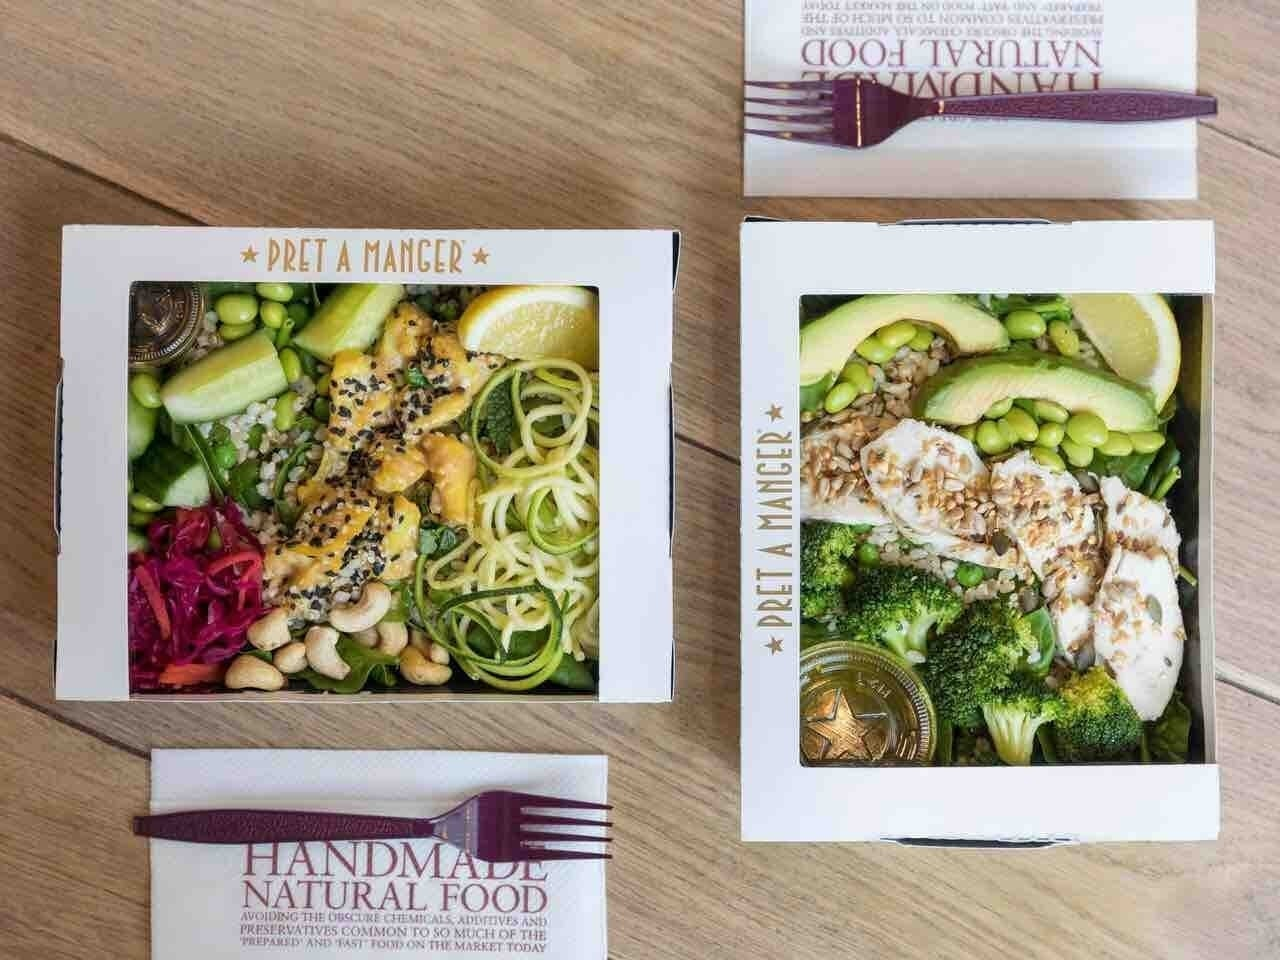 Pret salad and protein boxes 10:45pm collection